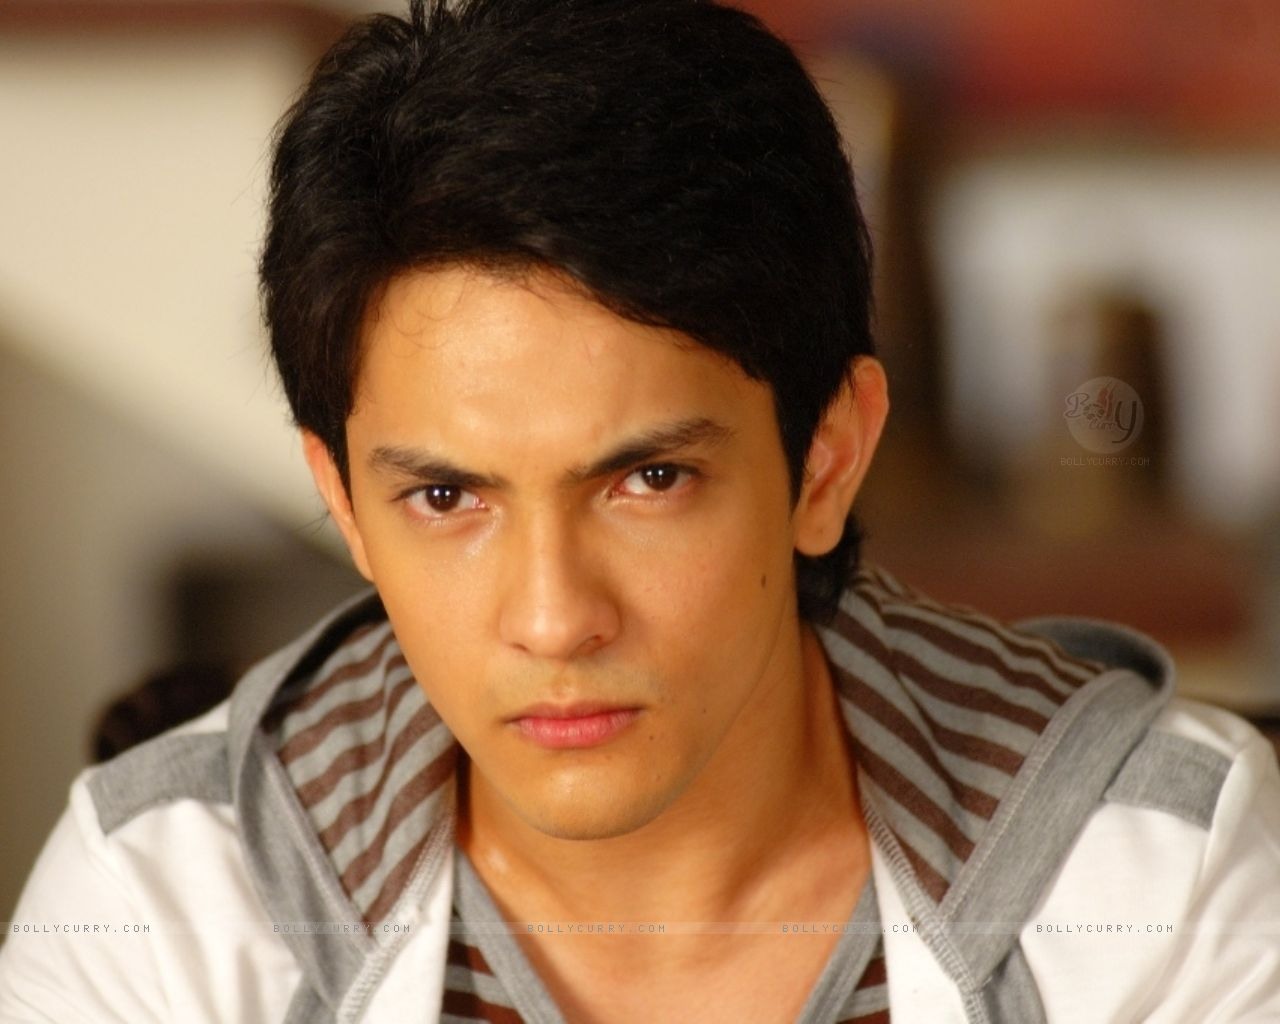 bollywood actors pictures. indian actors pictures!: august 2011